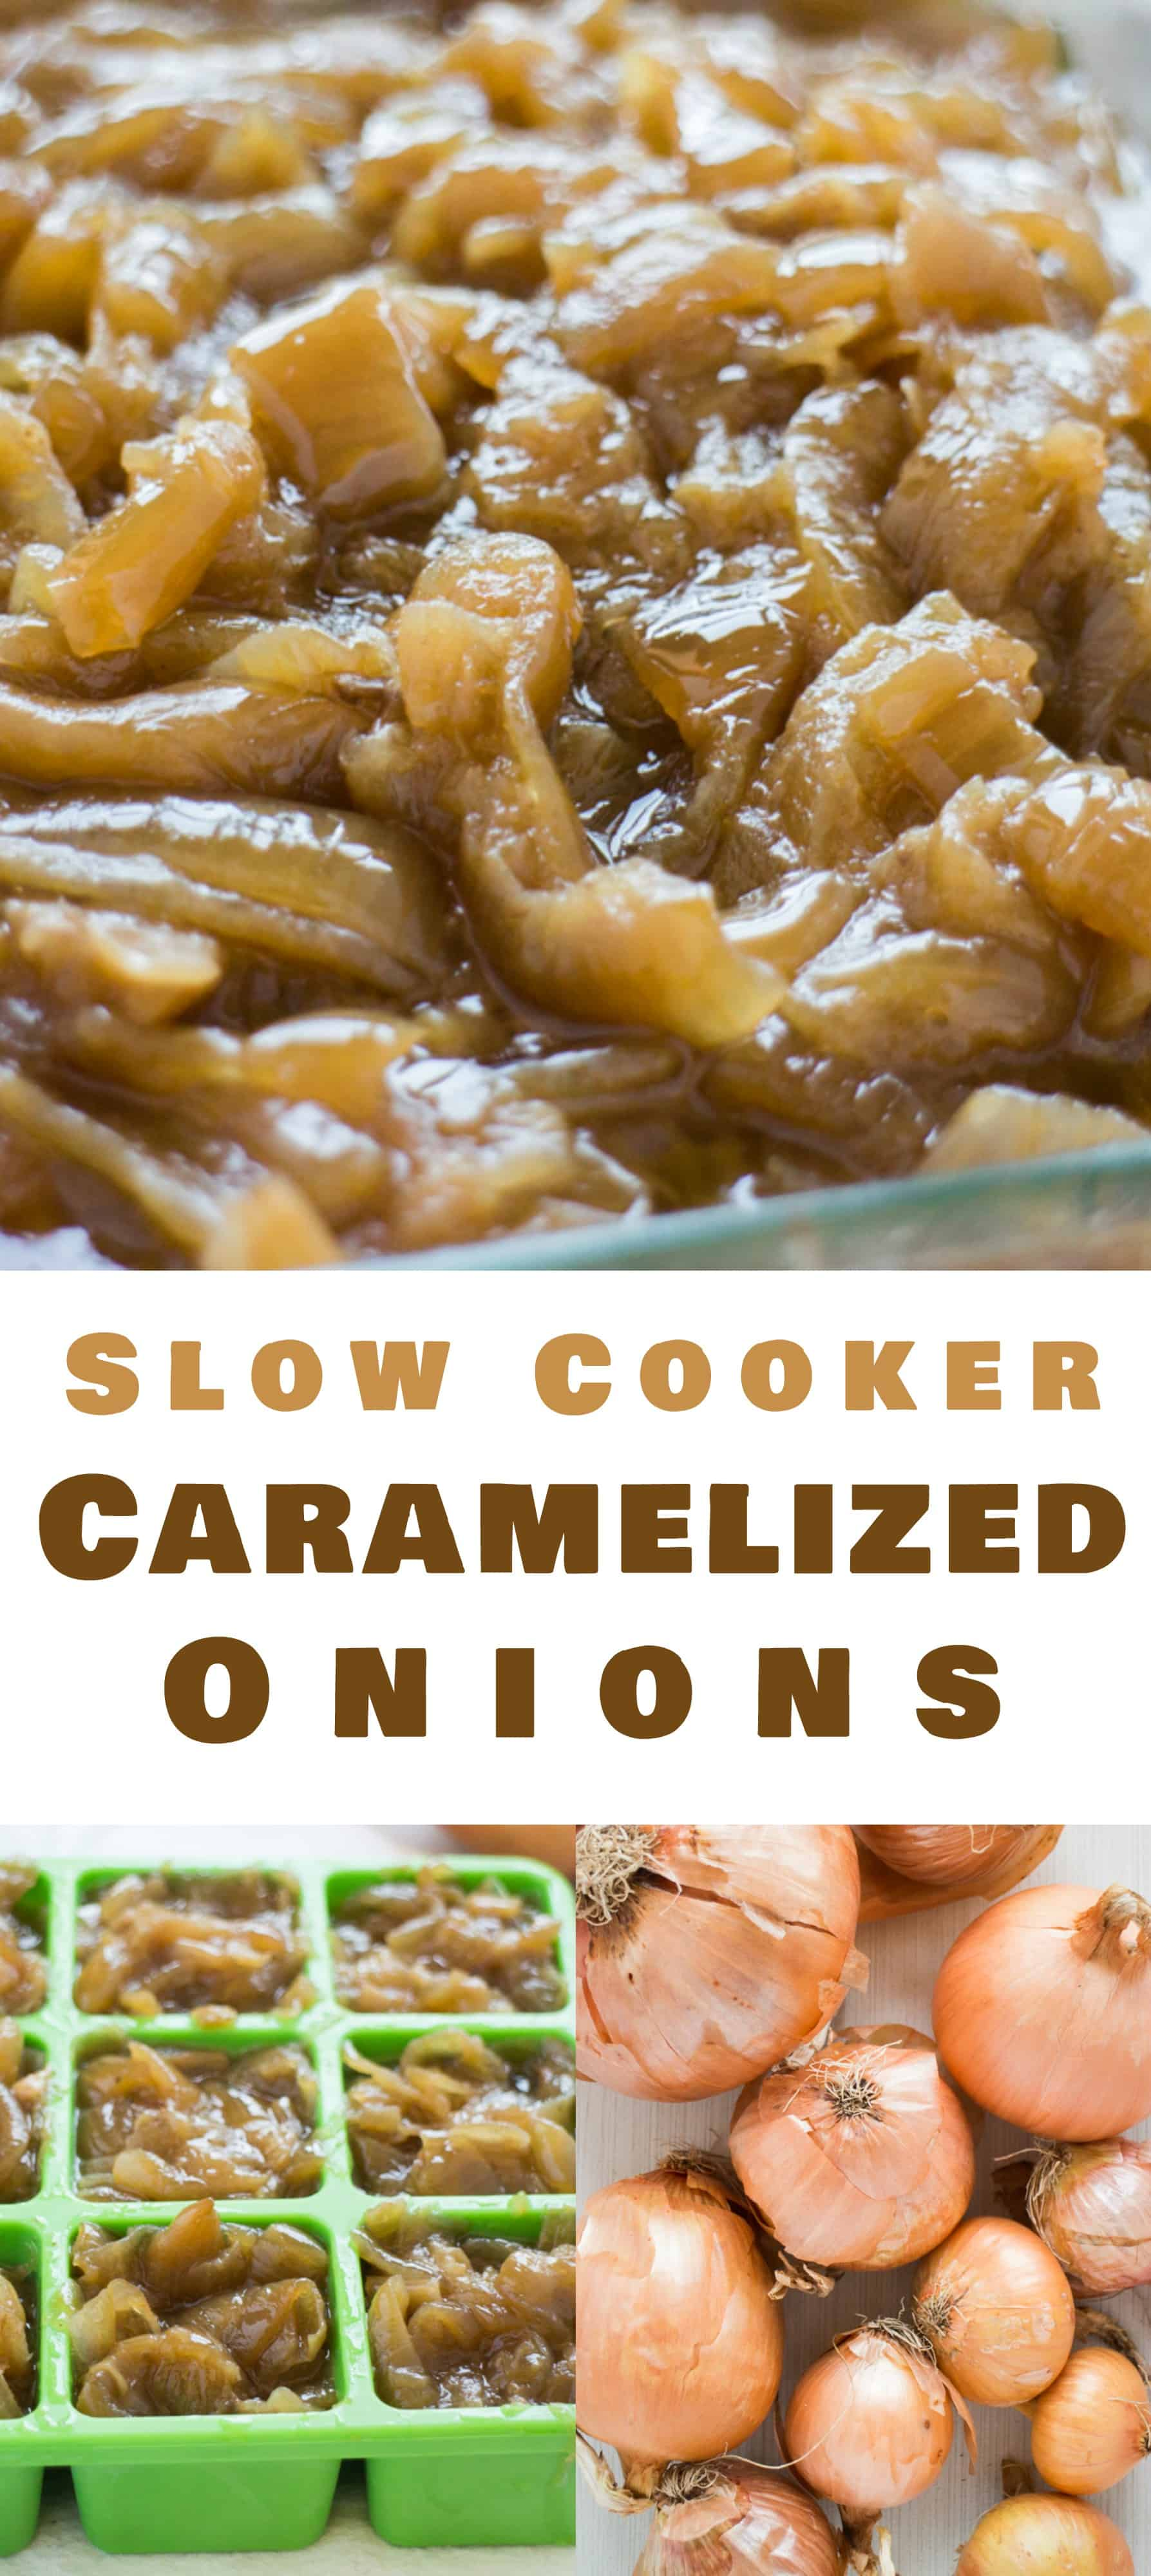 DELICIOUS Slow Cooker Caramelized Onions that are easy to make in your Crockpot! This 4 ingredient recipe is the best and will have melt in your mouth onions ready for your favorite dish in 5 hours! Serve them with soups, casseroles, sandwiches, salads, chicken, pasta, burgers, pizza and more - seriously, you can add them to almost anything!